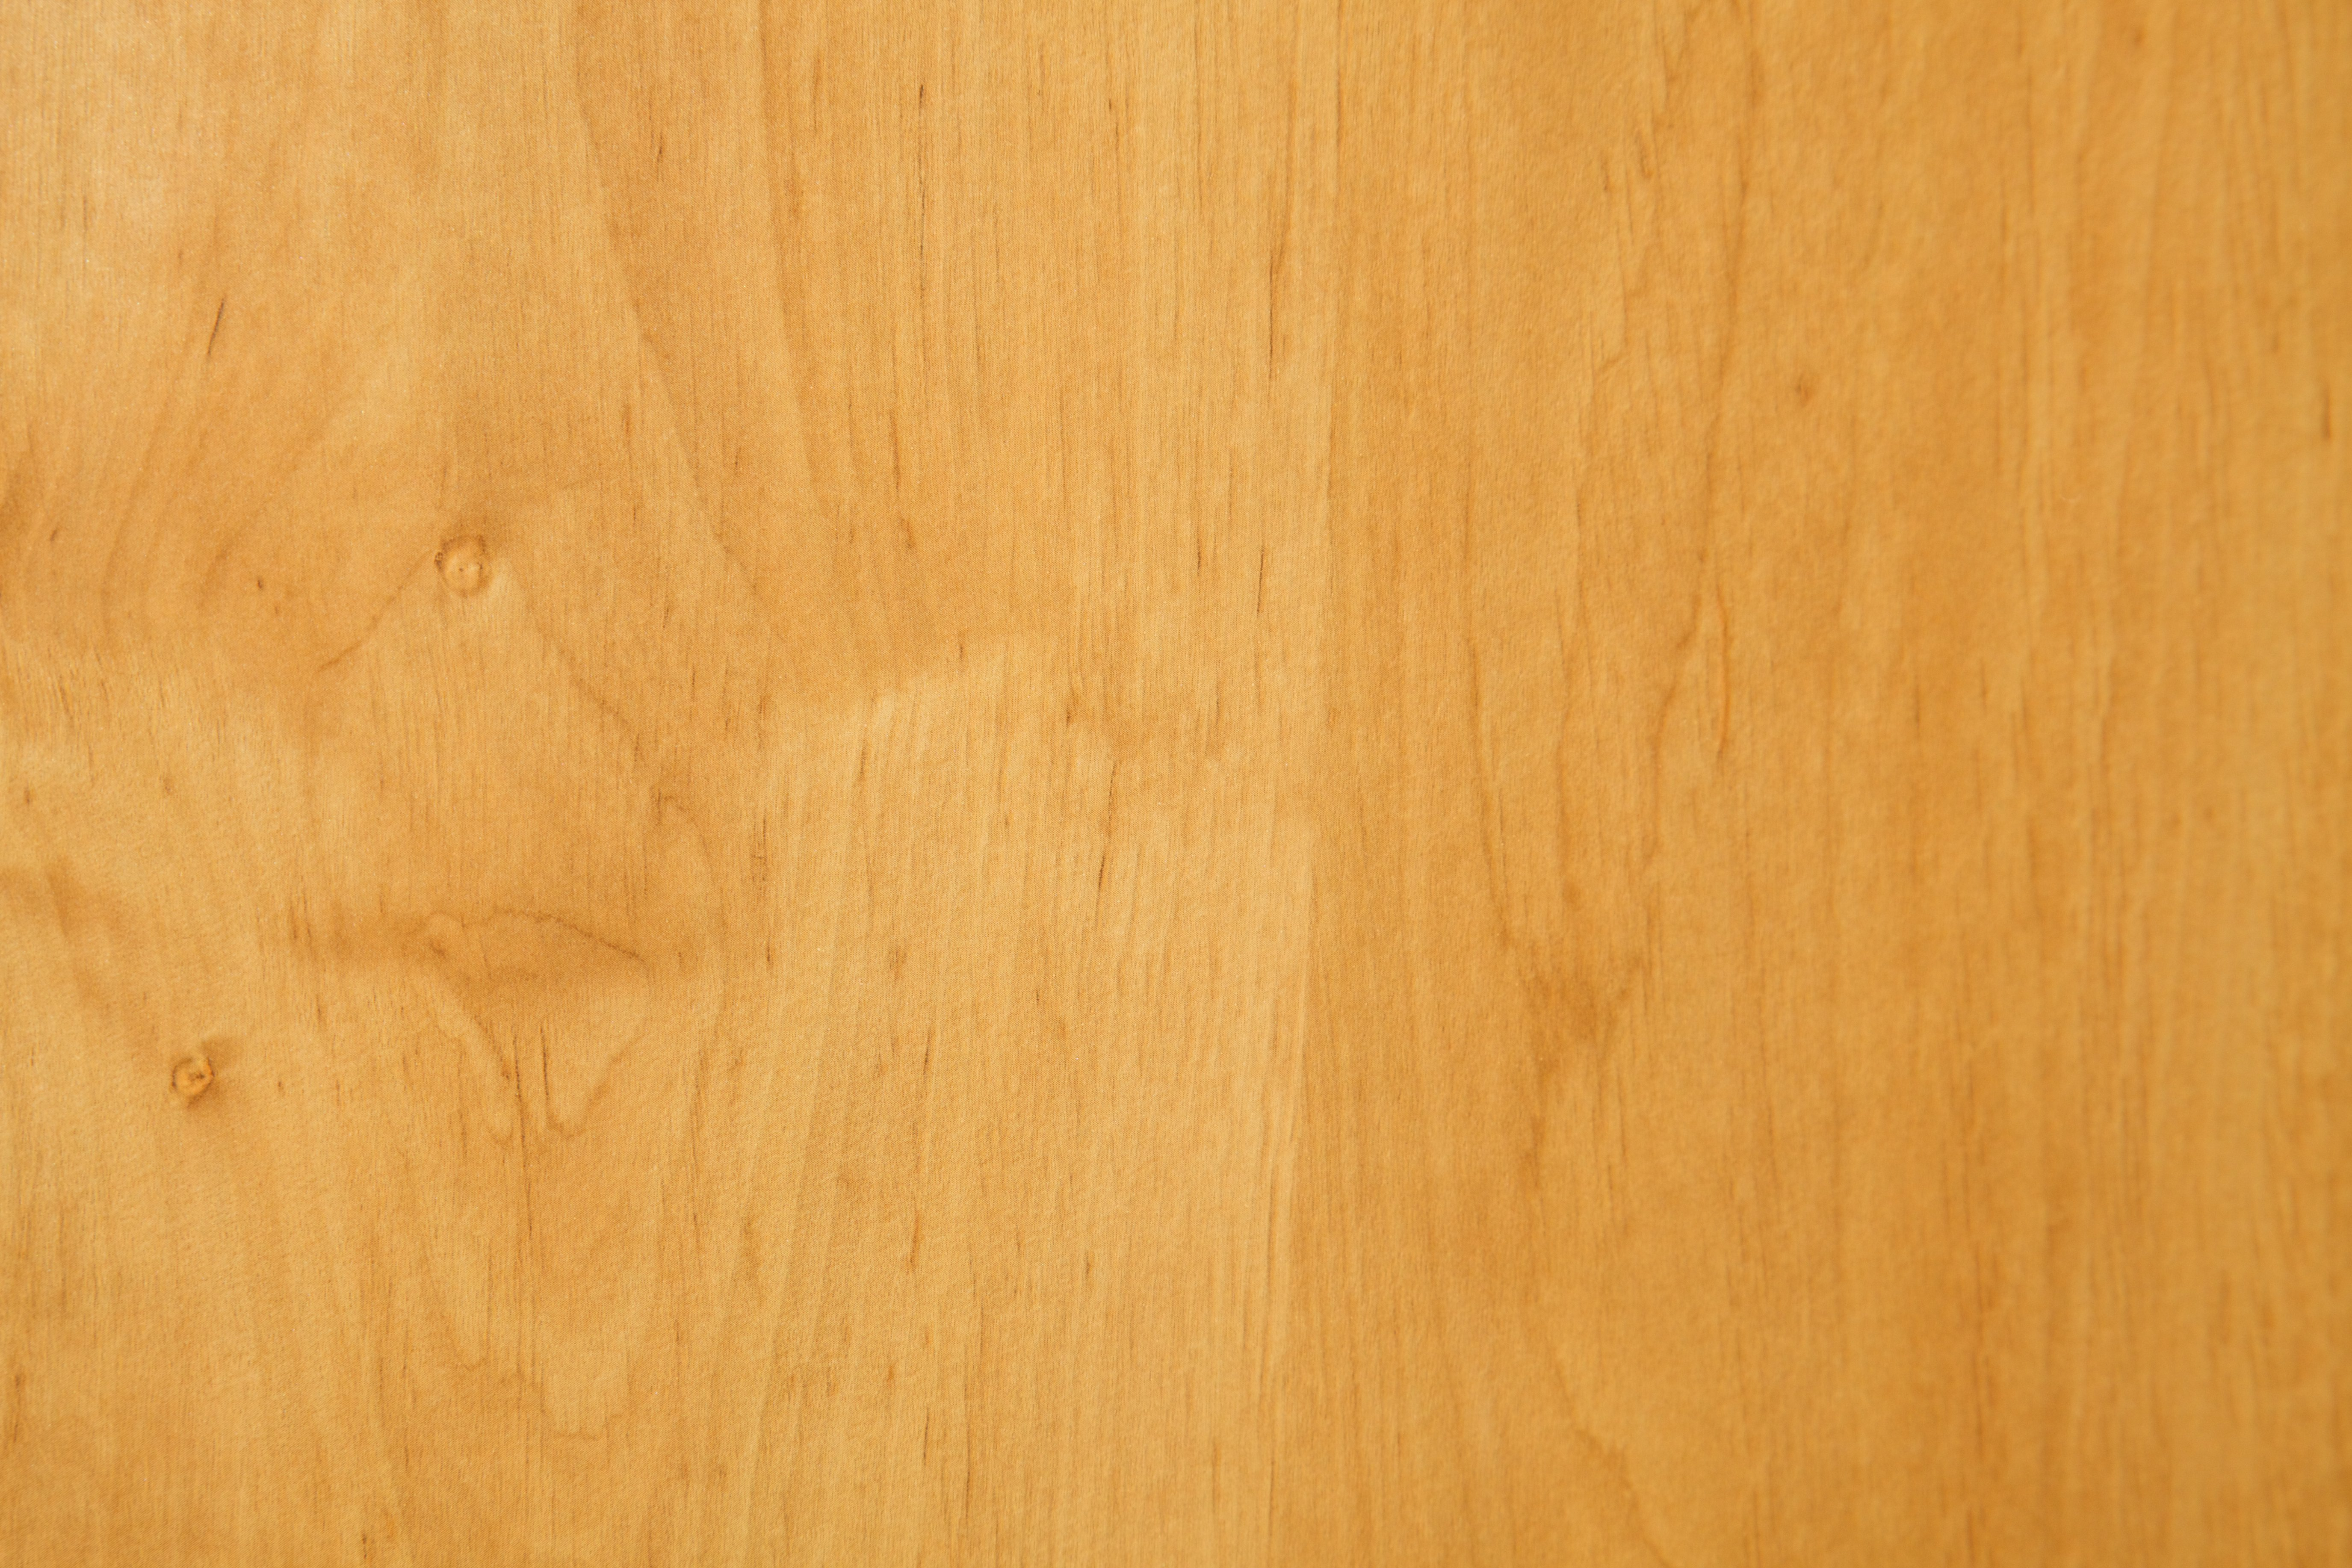 Light wood texture dominion payroll for Lumber calculator for walls